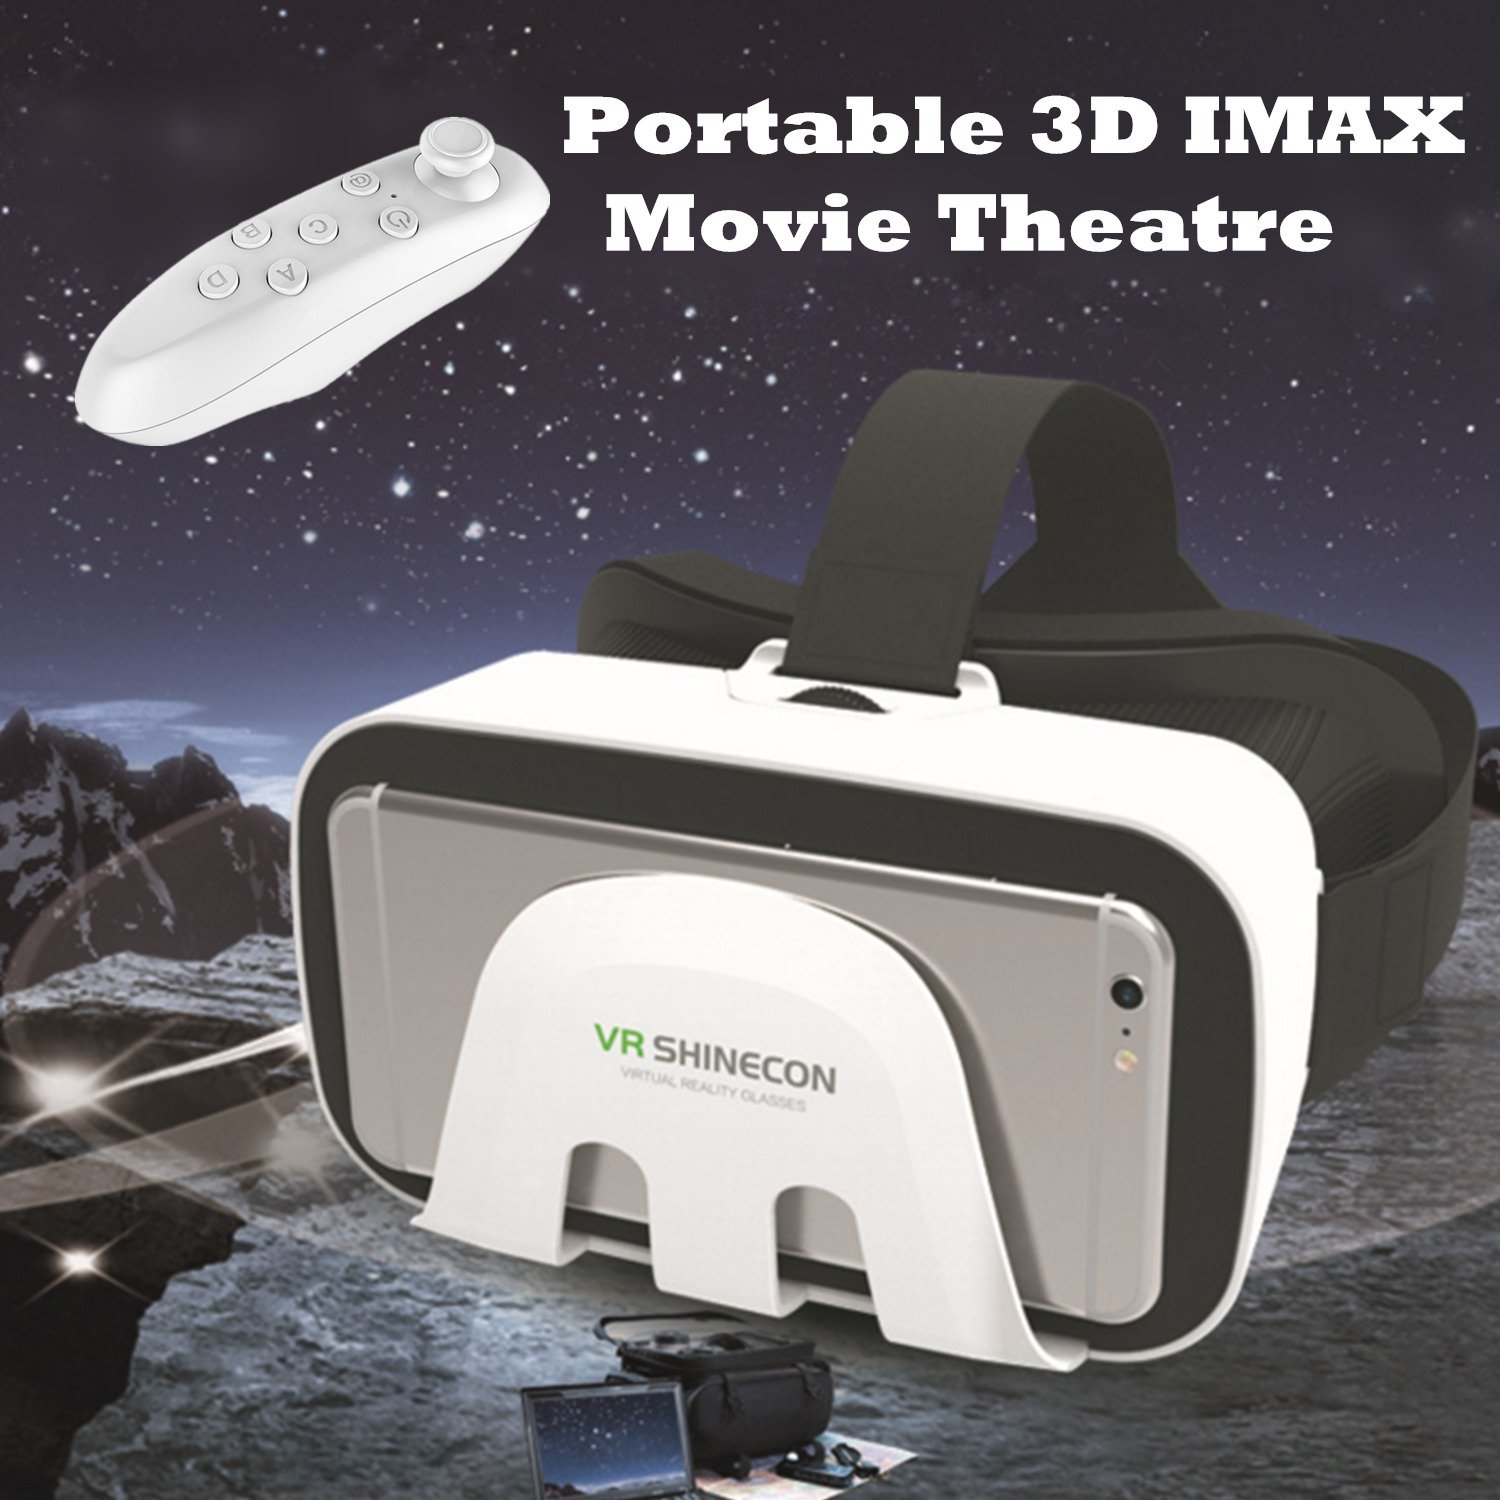 VR Headset, Tsanglight Virtual Reality Glasses Game/Video 3D VR Headset with Remote Controller for IOS iPhone 7/6S Plus, Android Samsung S7 Edge/S7 etc Sony LG HTC and Other 4.7-6.0inch Smart Phones